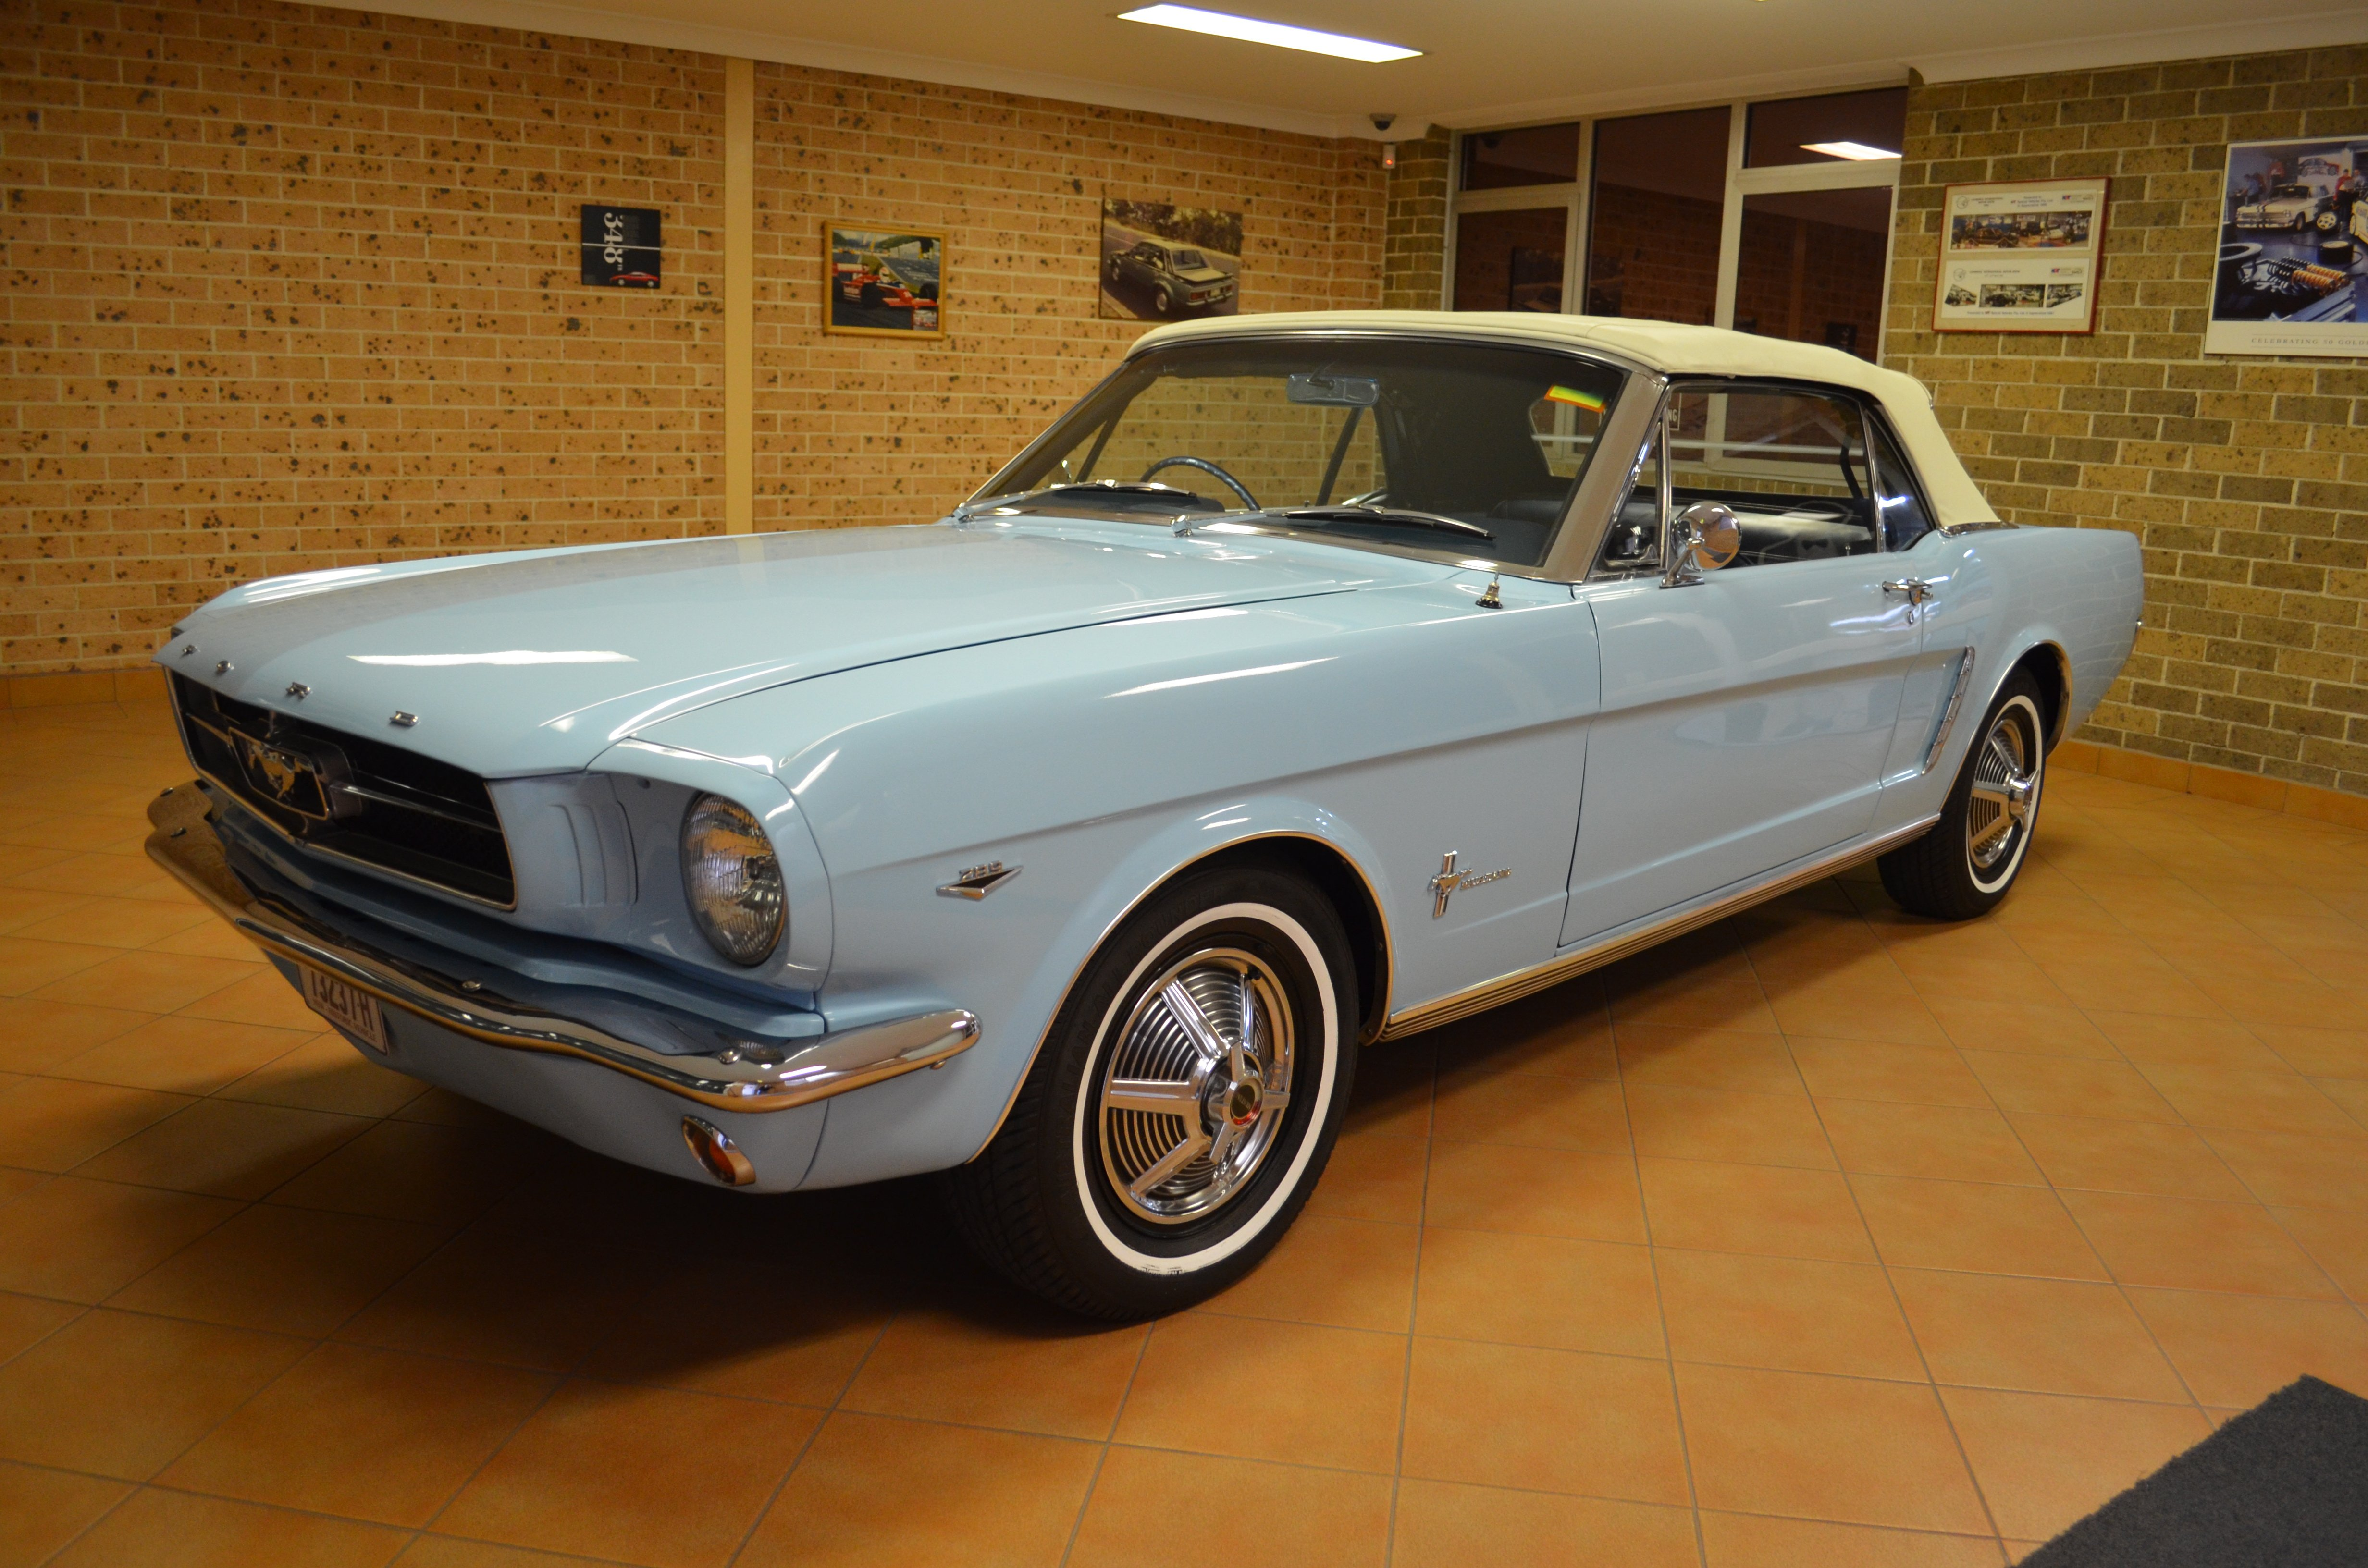 1964 1 2 Ford Mustang Convertible D Code 33266 Miles Muscle